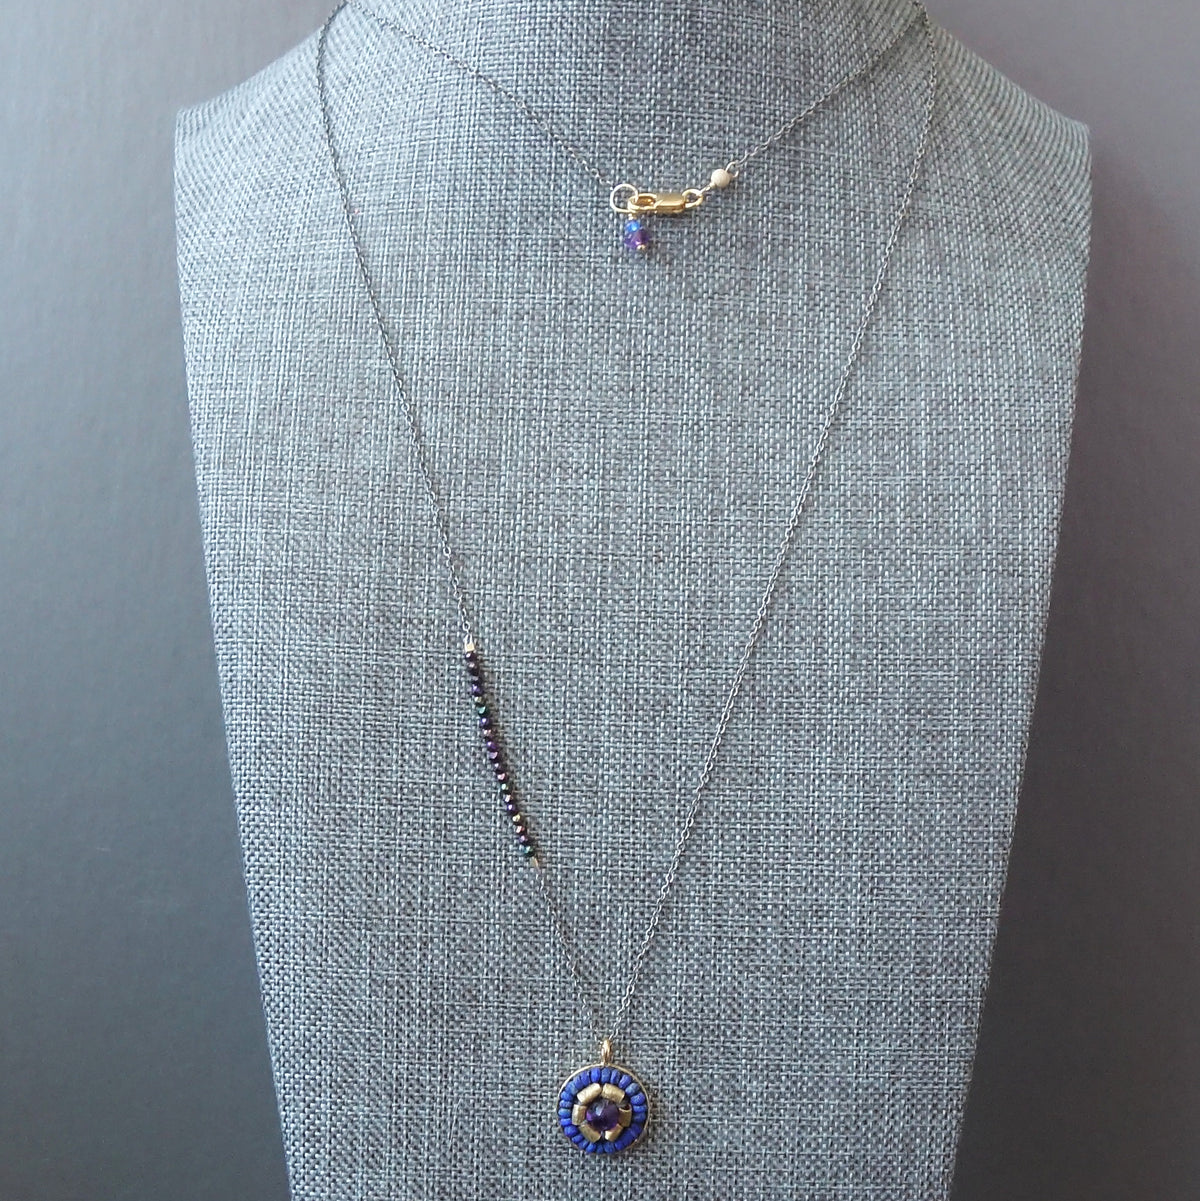 Amethyst, Gold, and Lapis mosaic pendant necklace